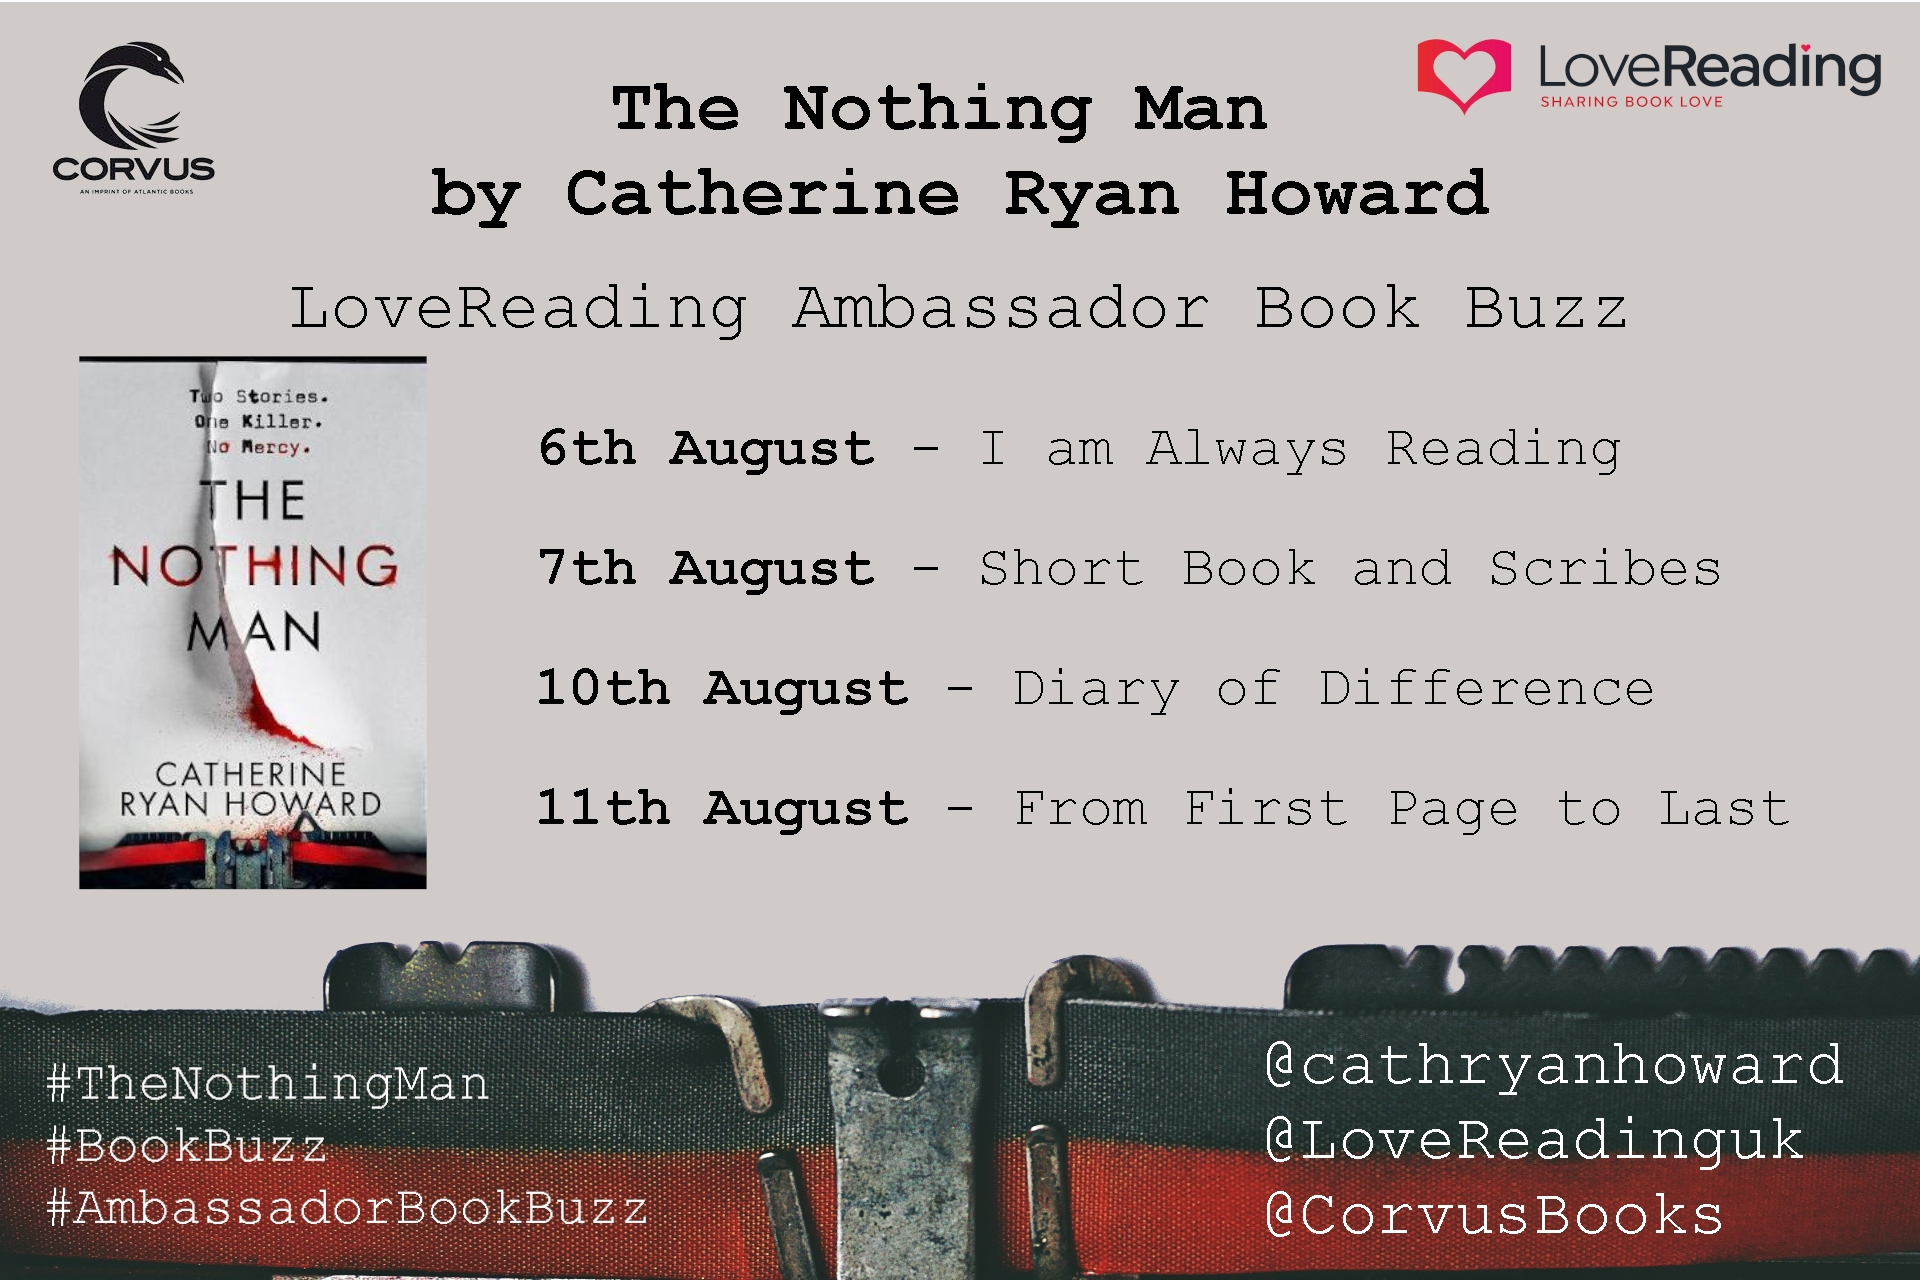 Ambassador Book Buzz: The Nothing Man by Catherine Ryan Howard